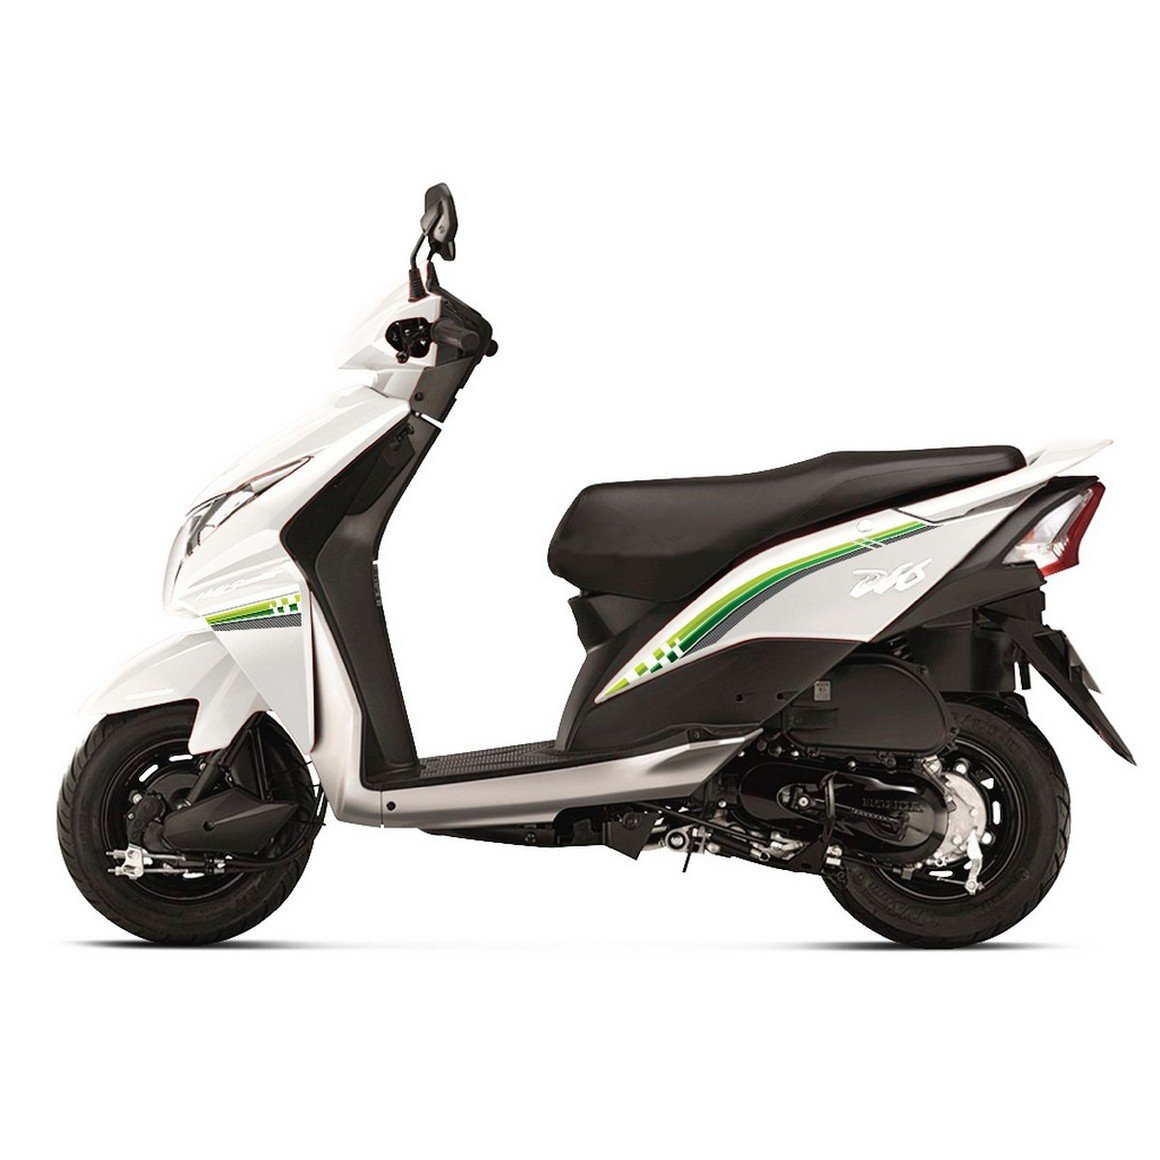 Autographix glory graphic decals for honda dio set of 4 green amazon in car motorbike